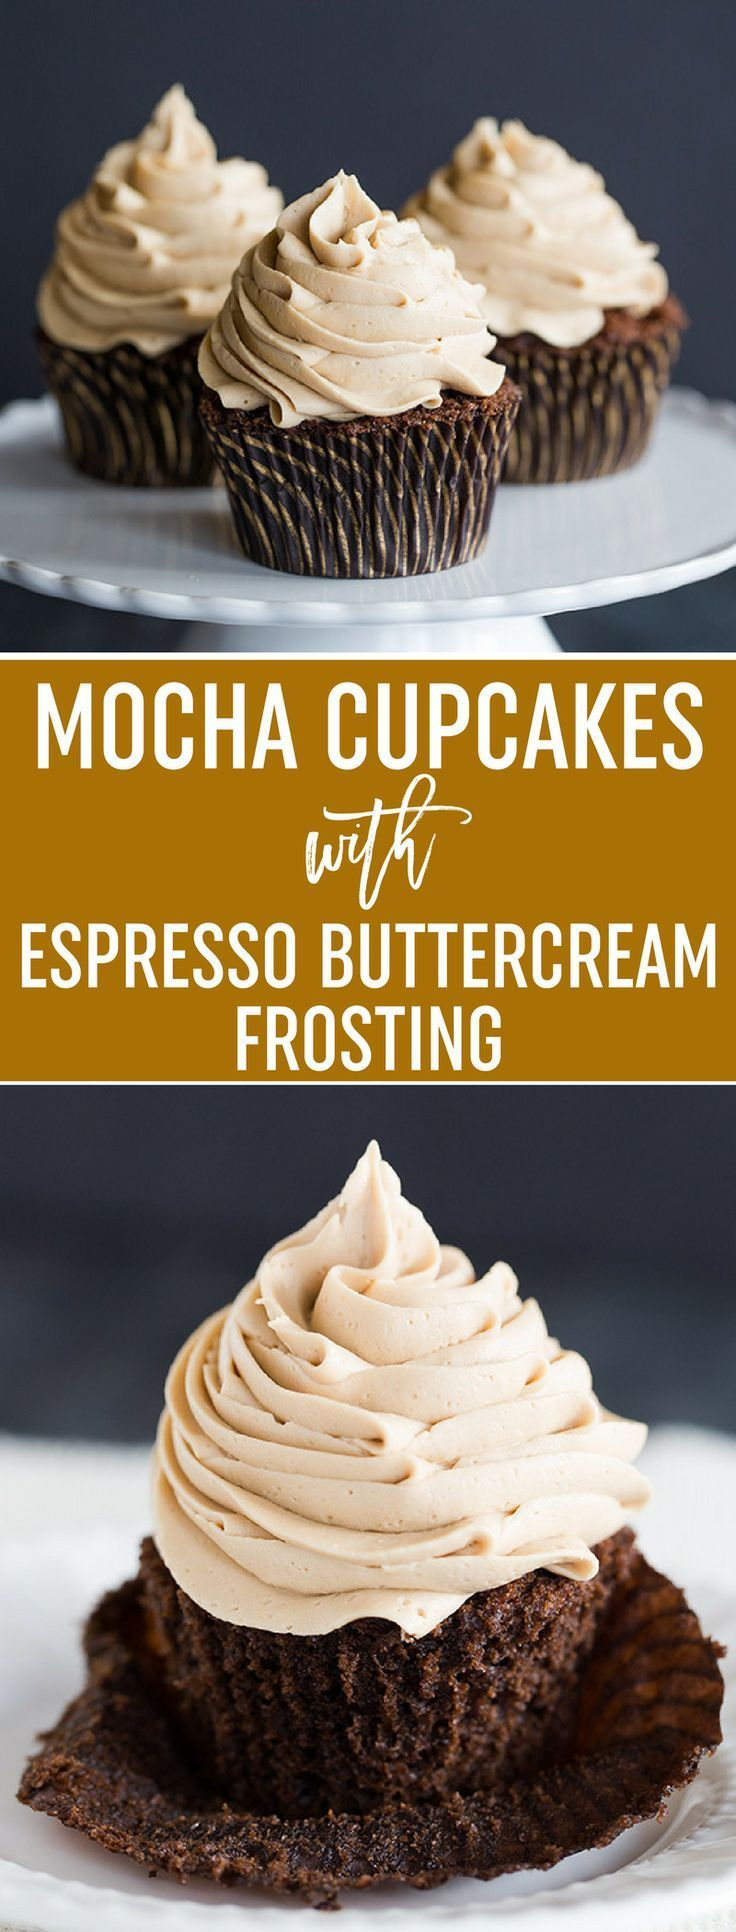 Mocha Cupcakes with Espresso Buttercream Frosting #cakesanddeserts